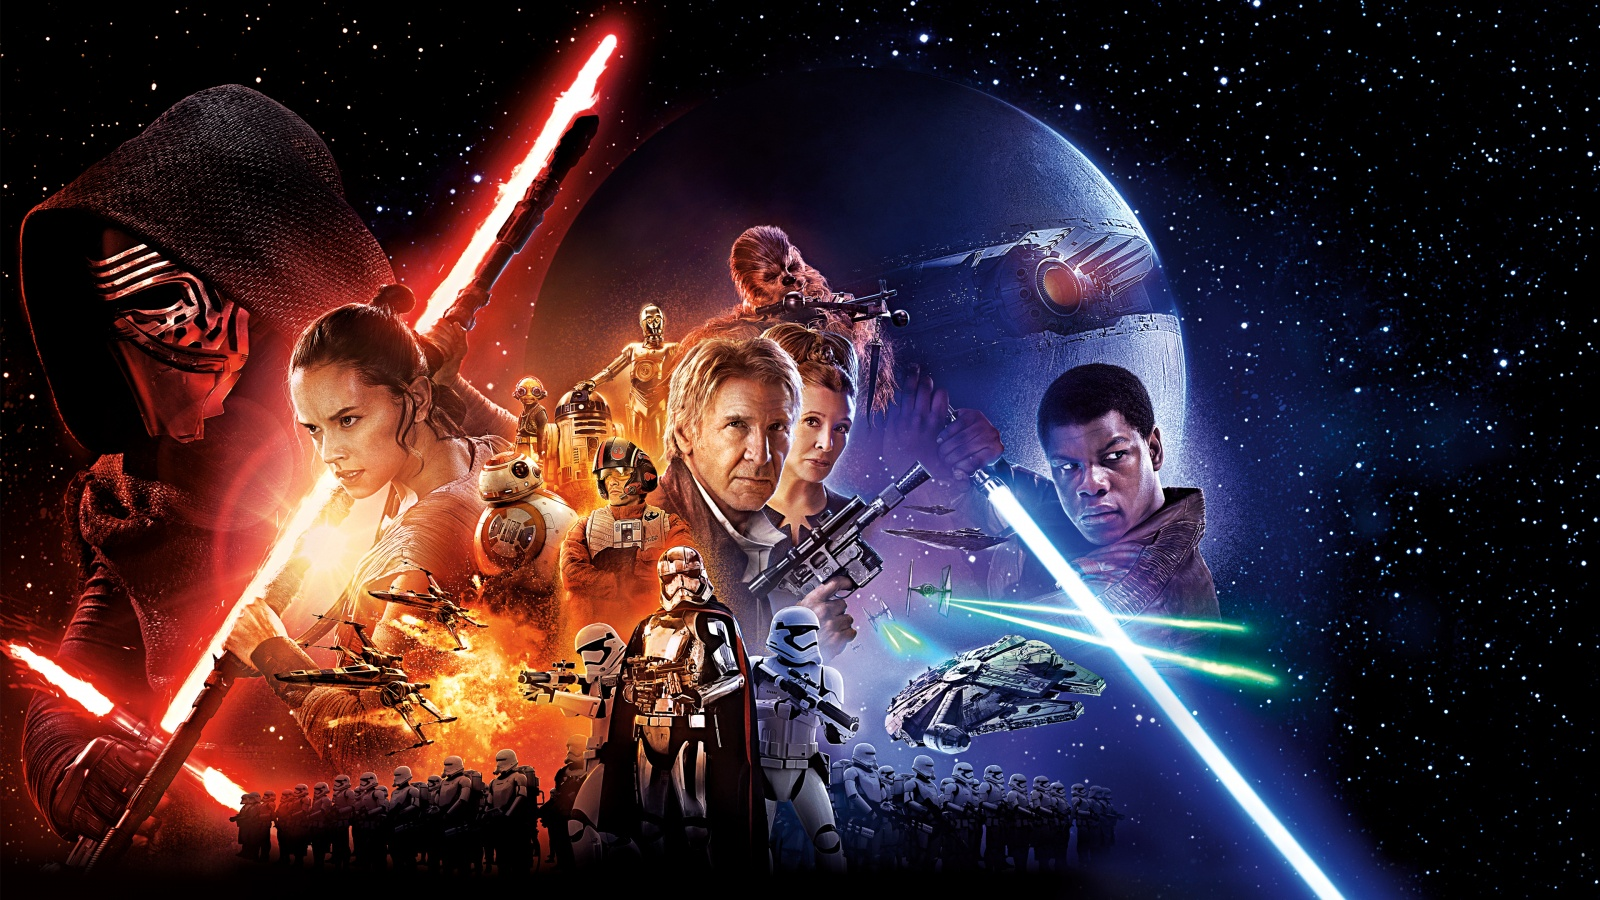 Star Wars Episode VII The Force Awakens Movie Wallpapers HD 1600x900